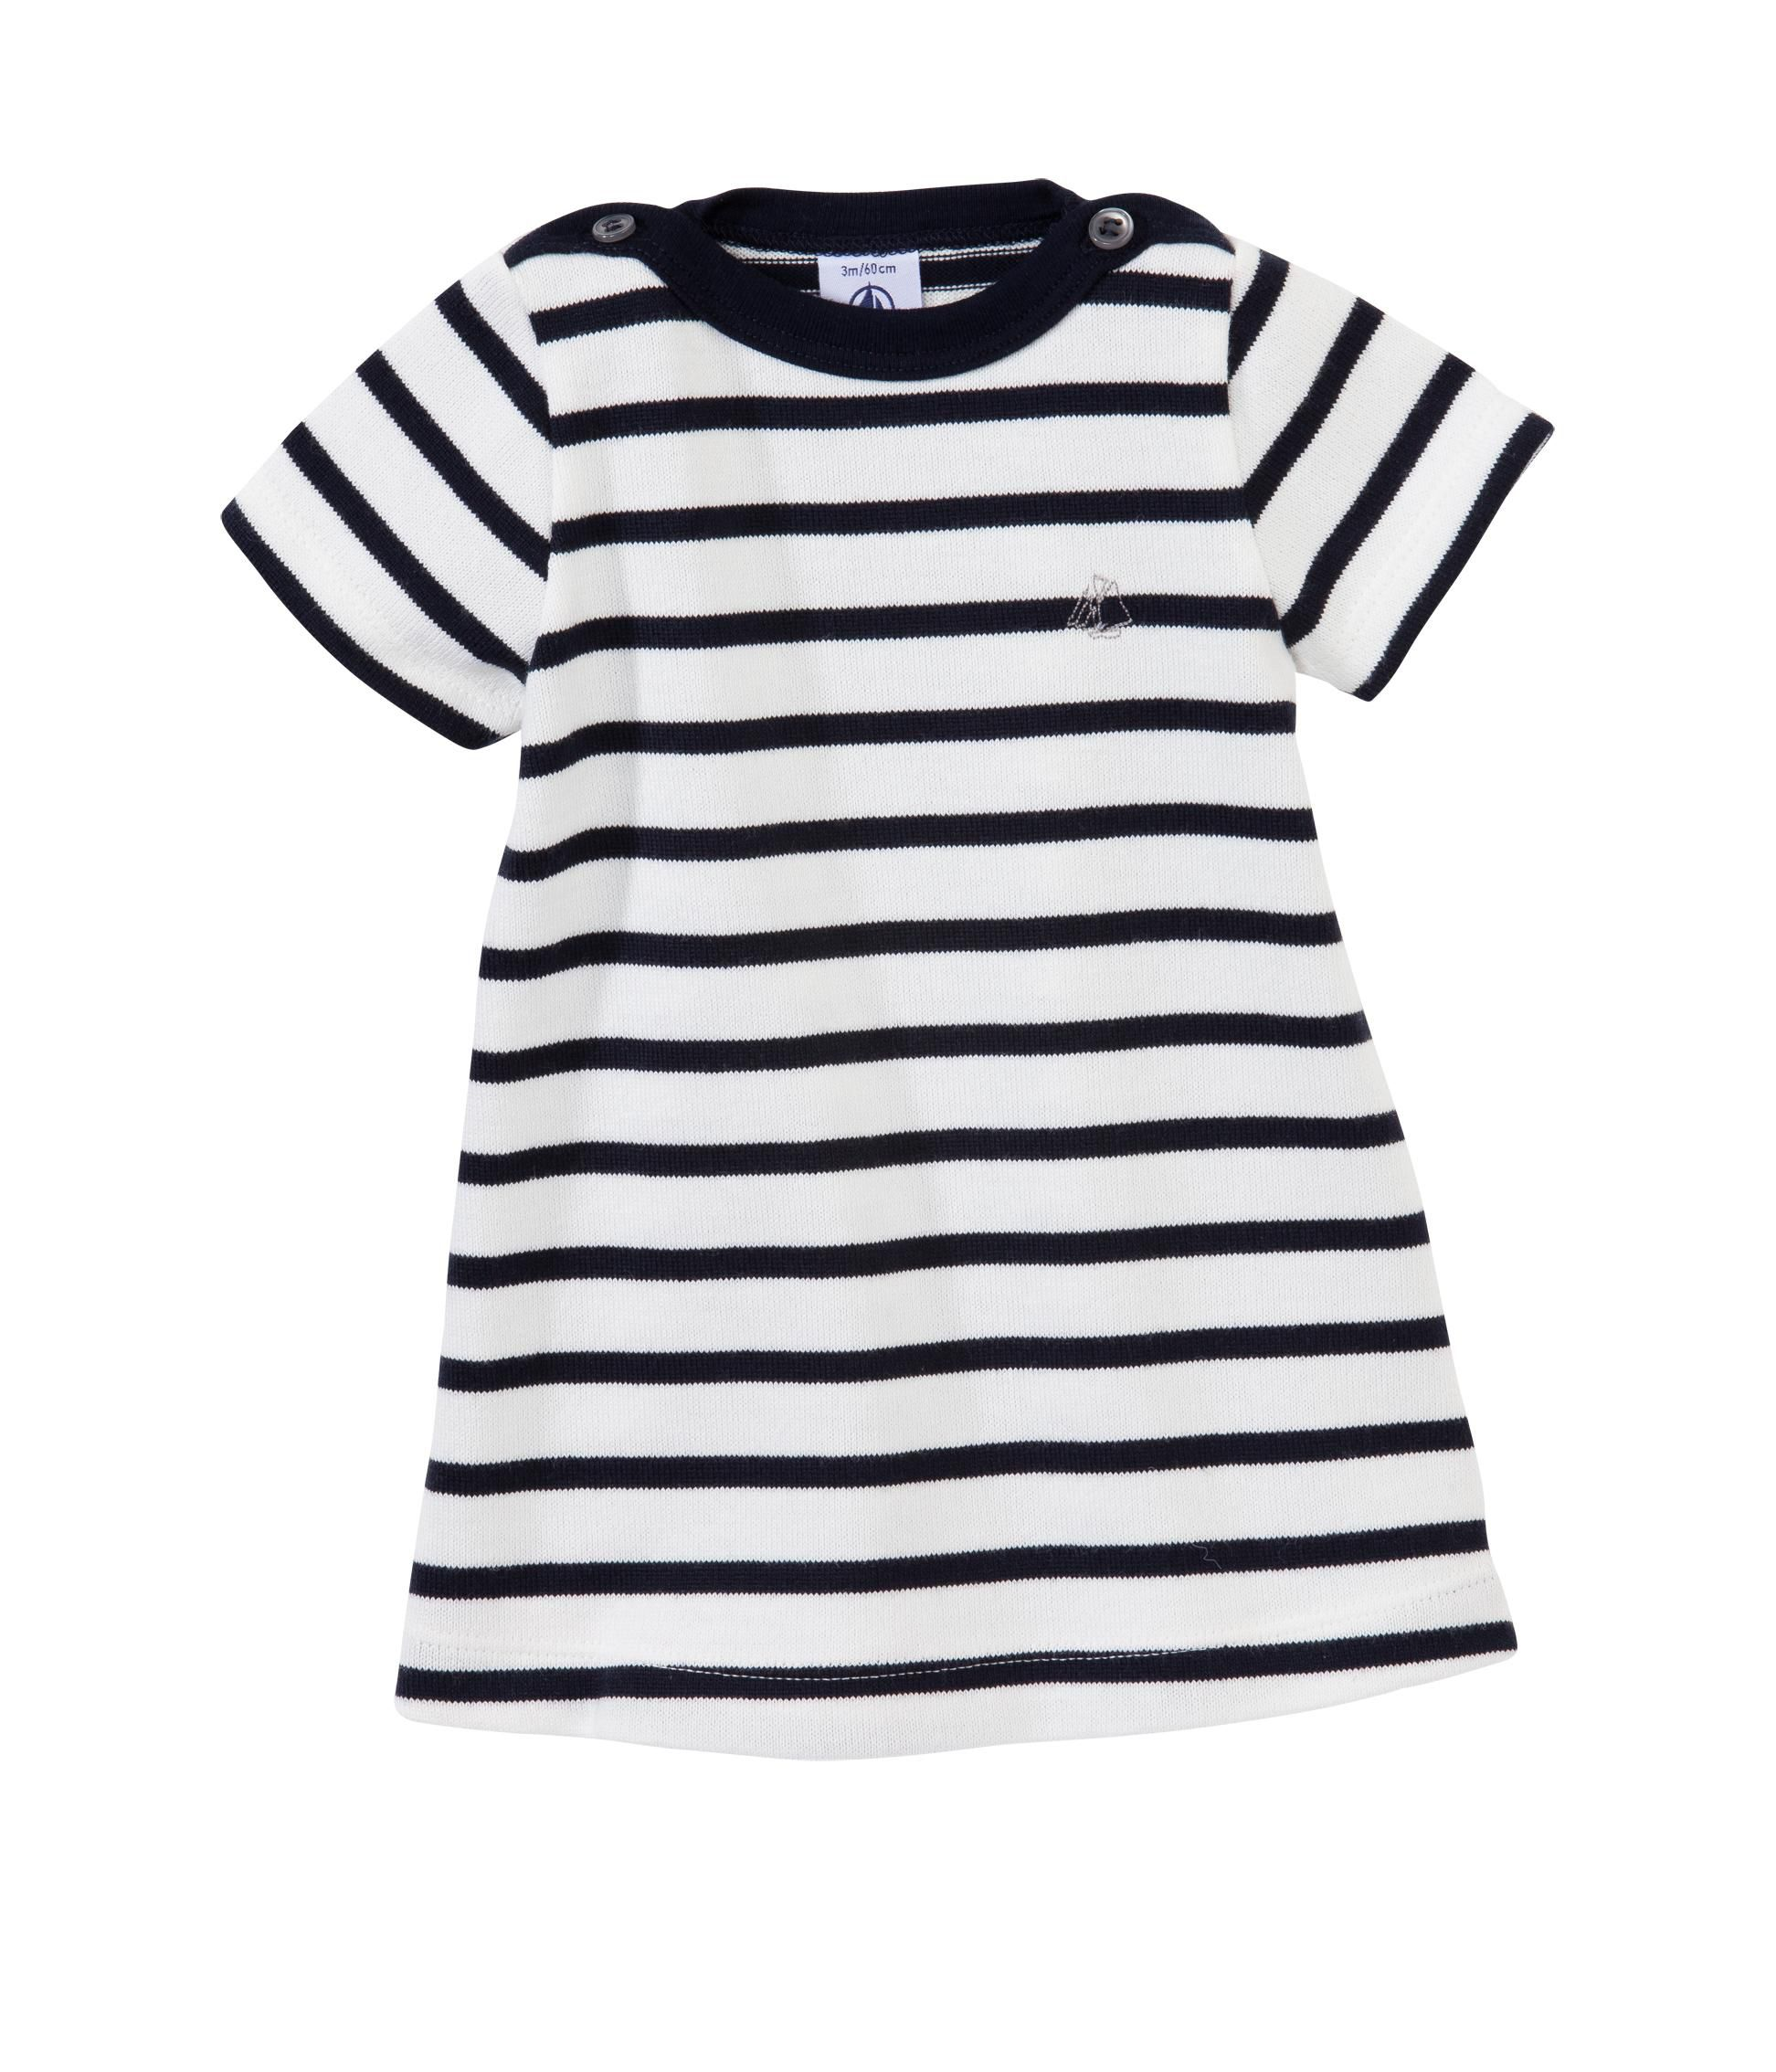 Baby girl marinière dress with boat-neck